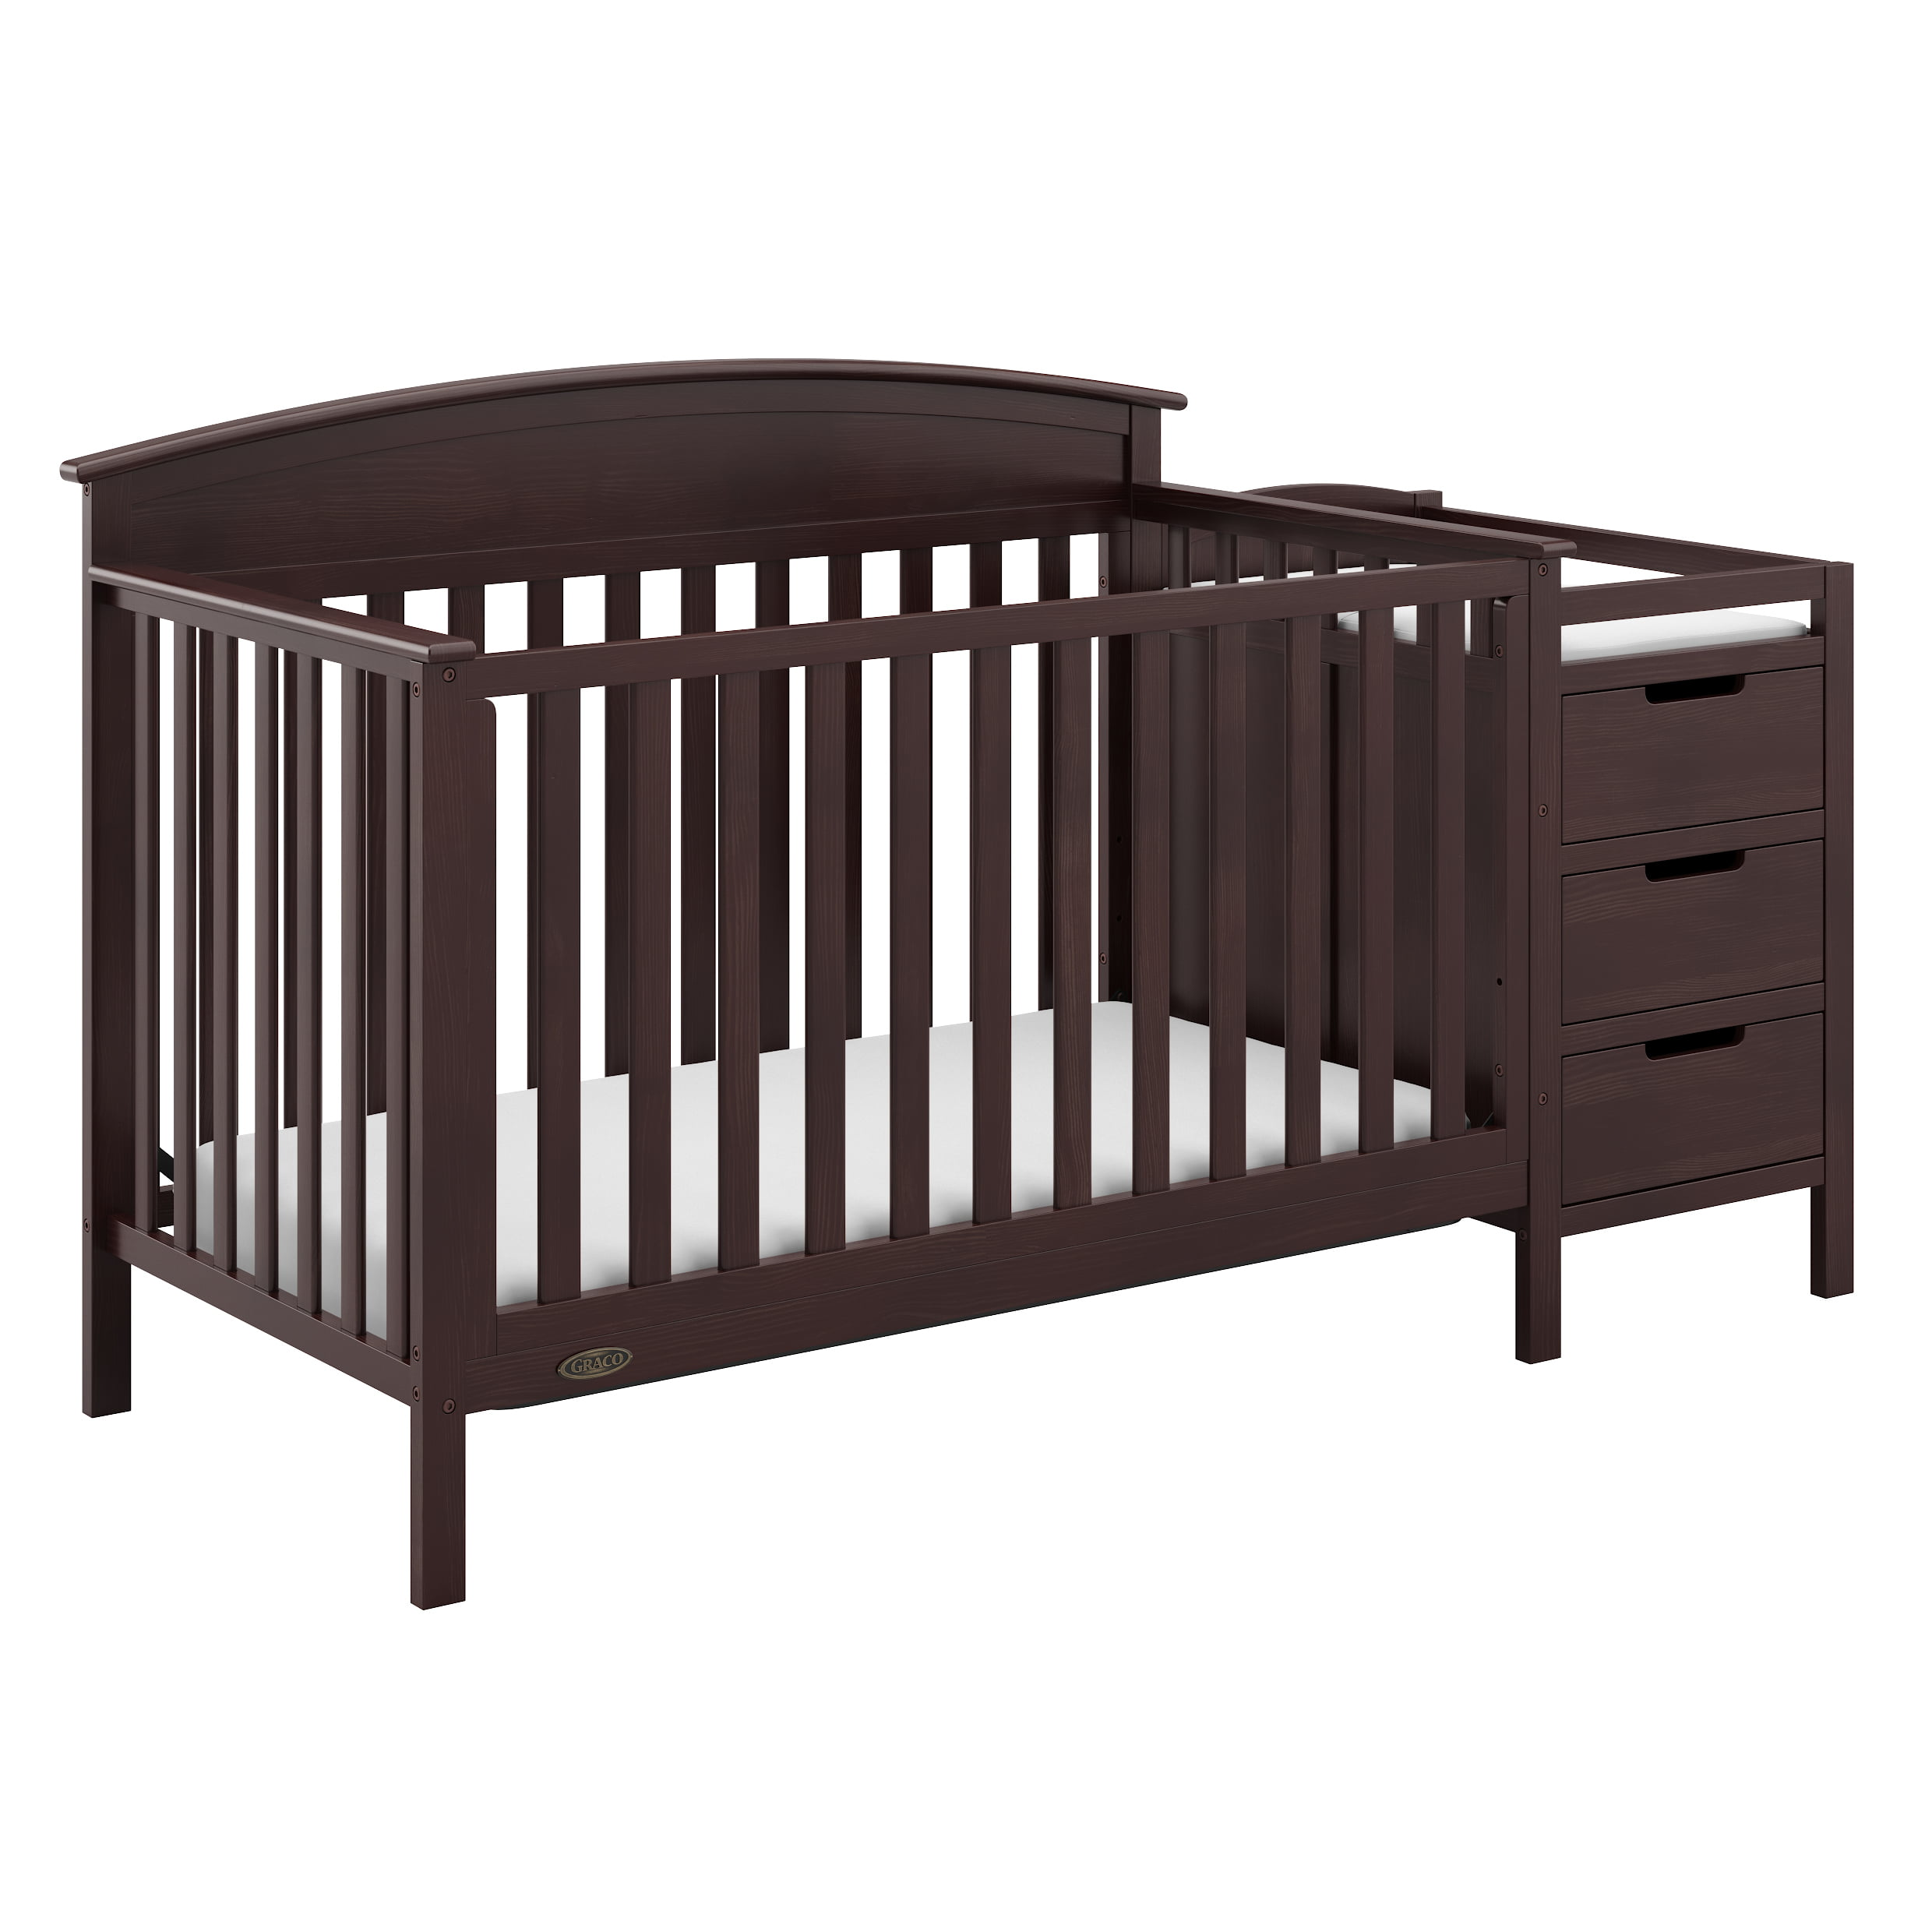 Graco Benton 5 in 1 Crib and Changer Black by Graco